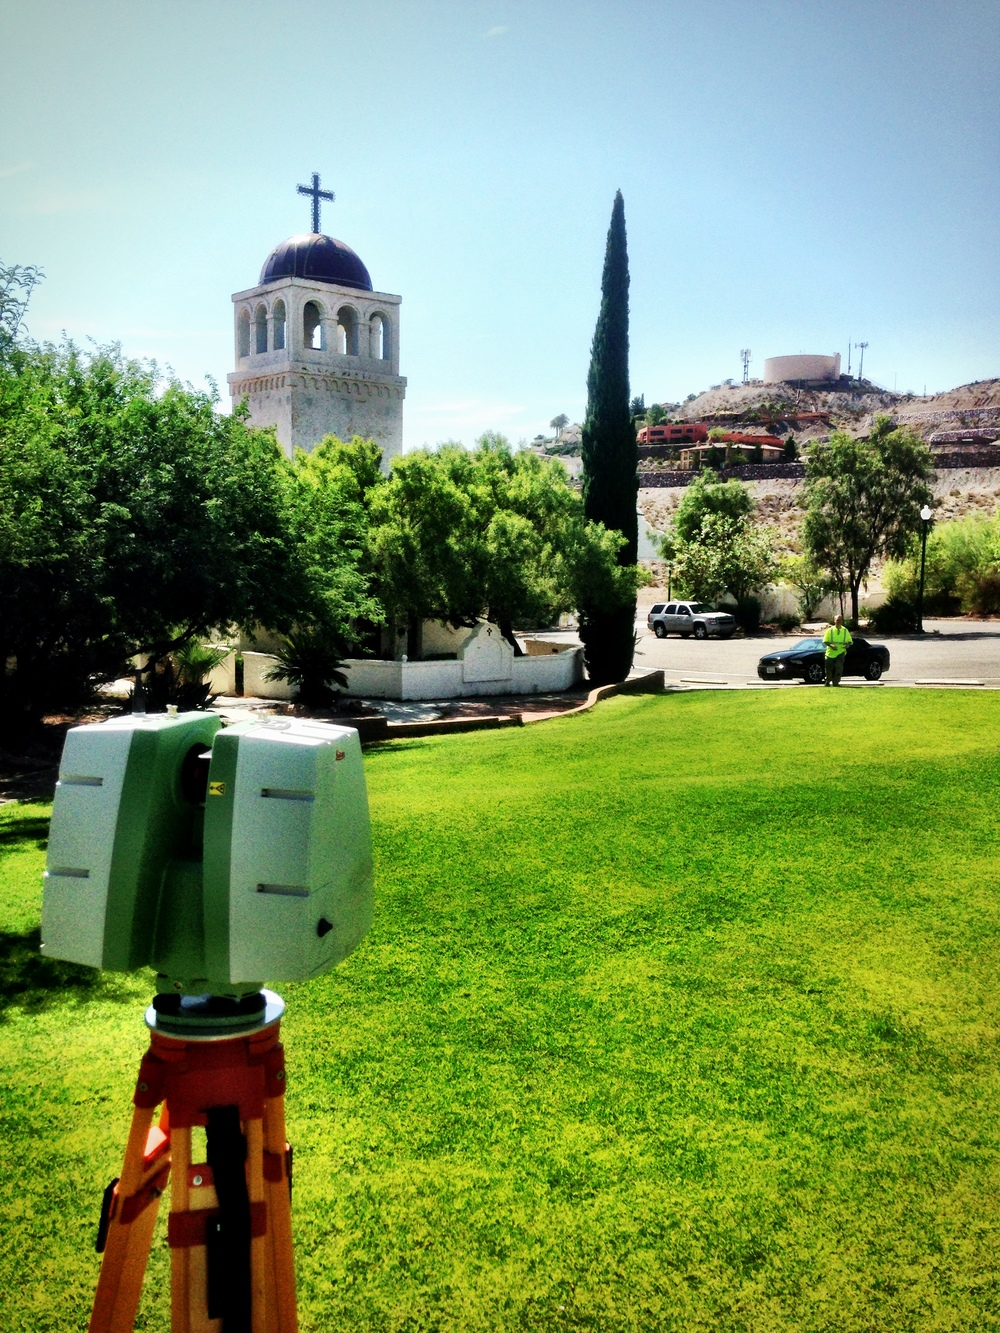 Laser Scanning in the field